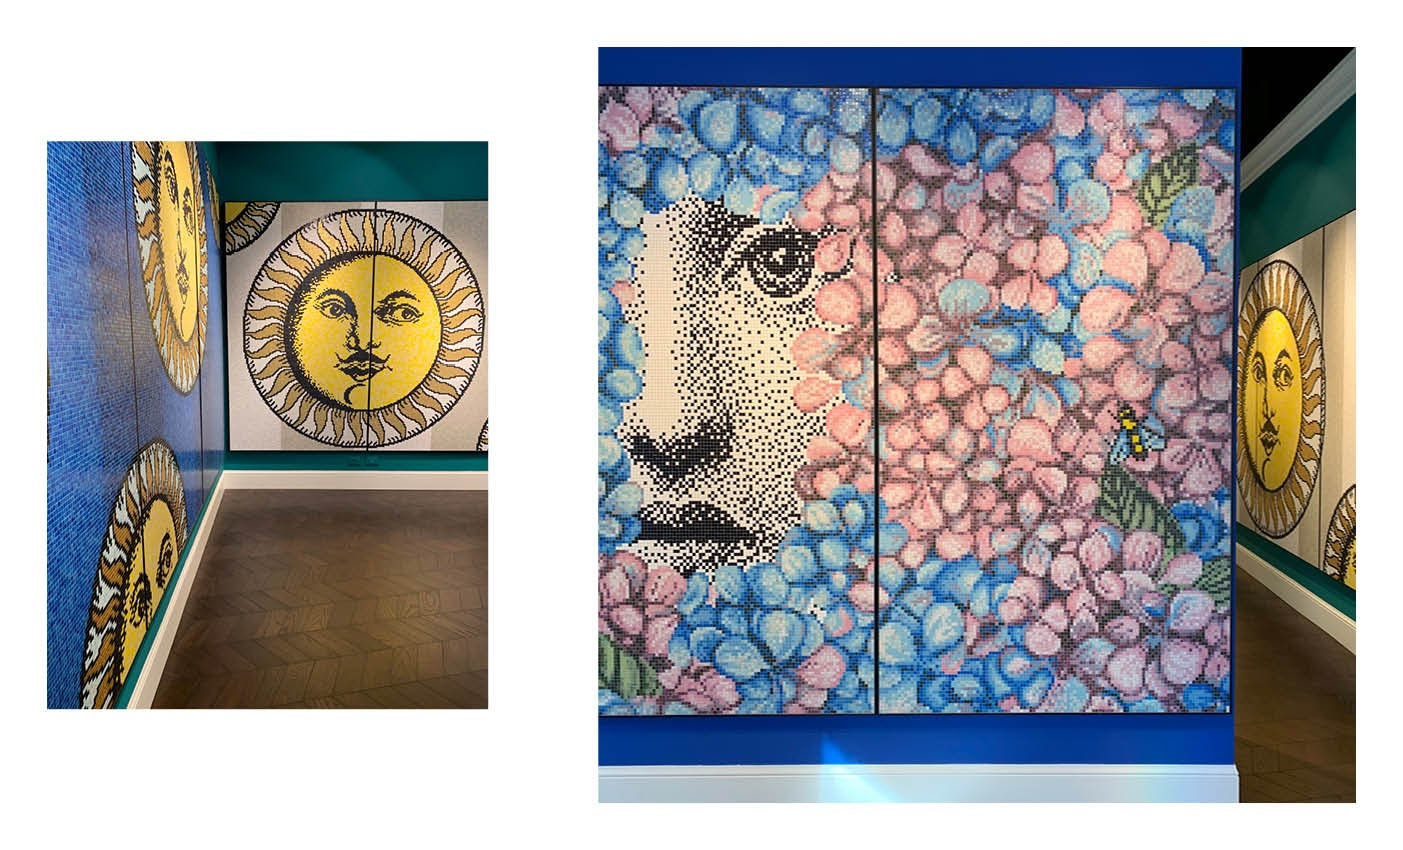 milan design week 2020 and new collezione fornasetti by bisazza